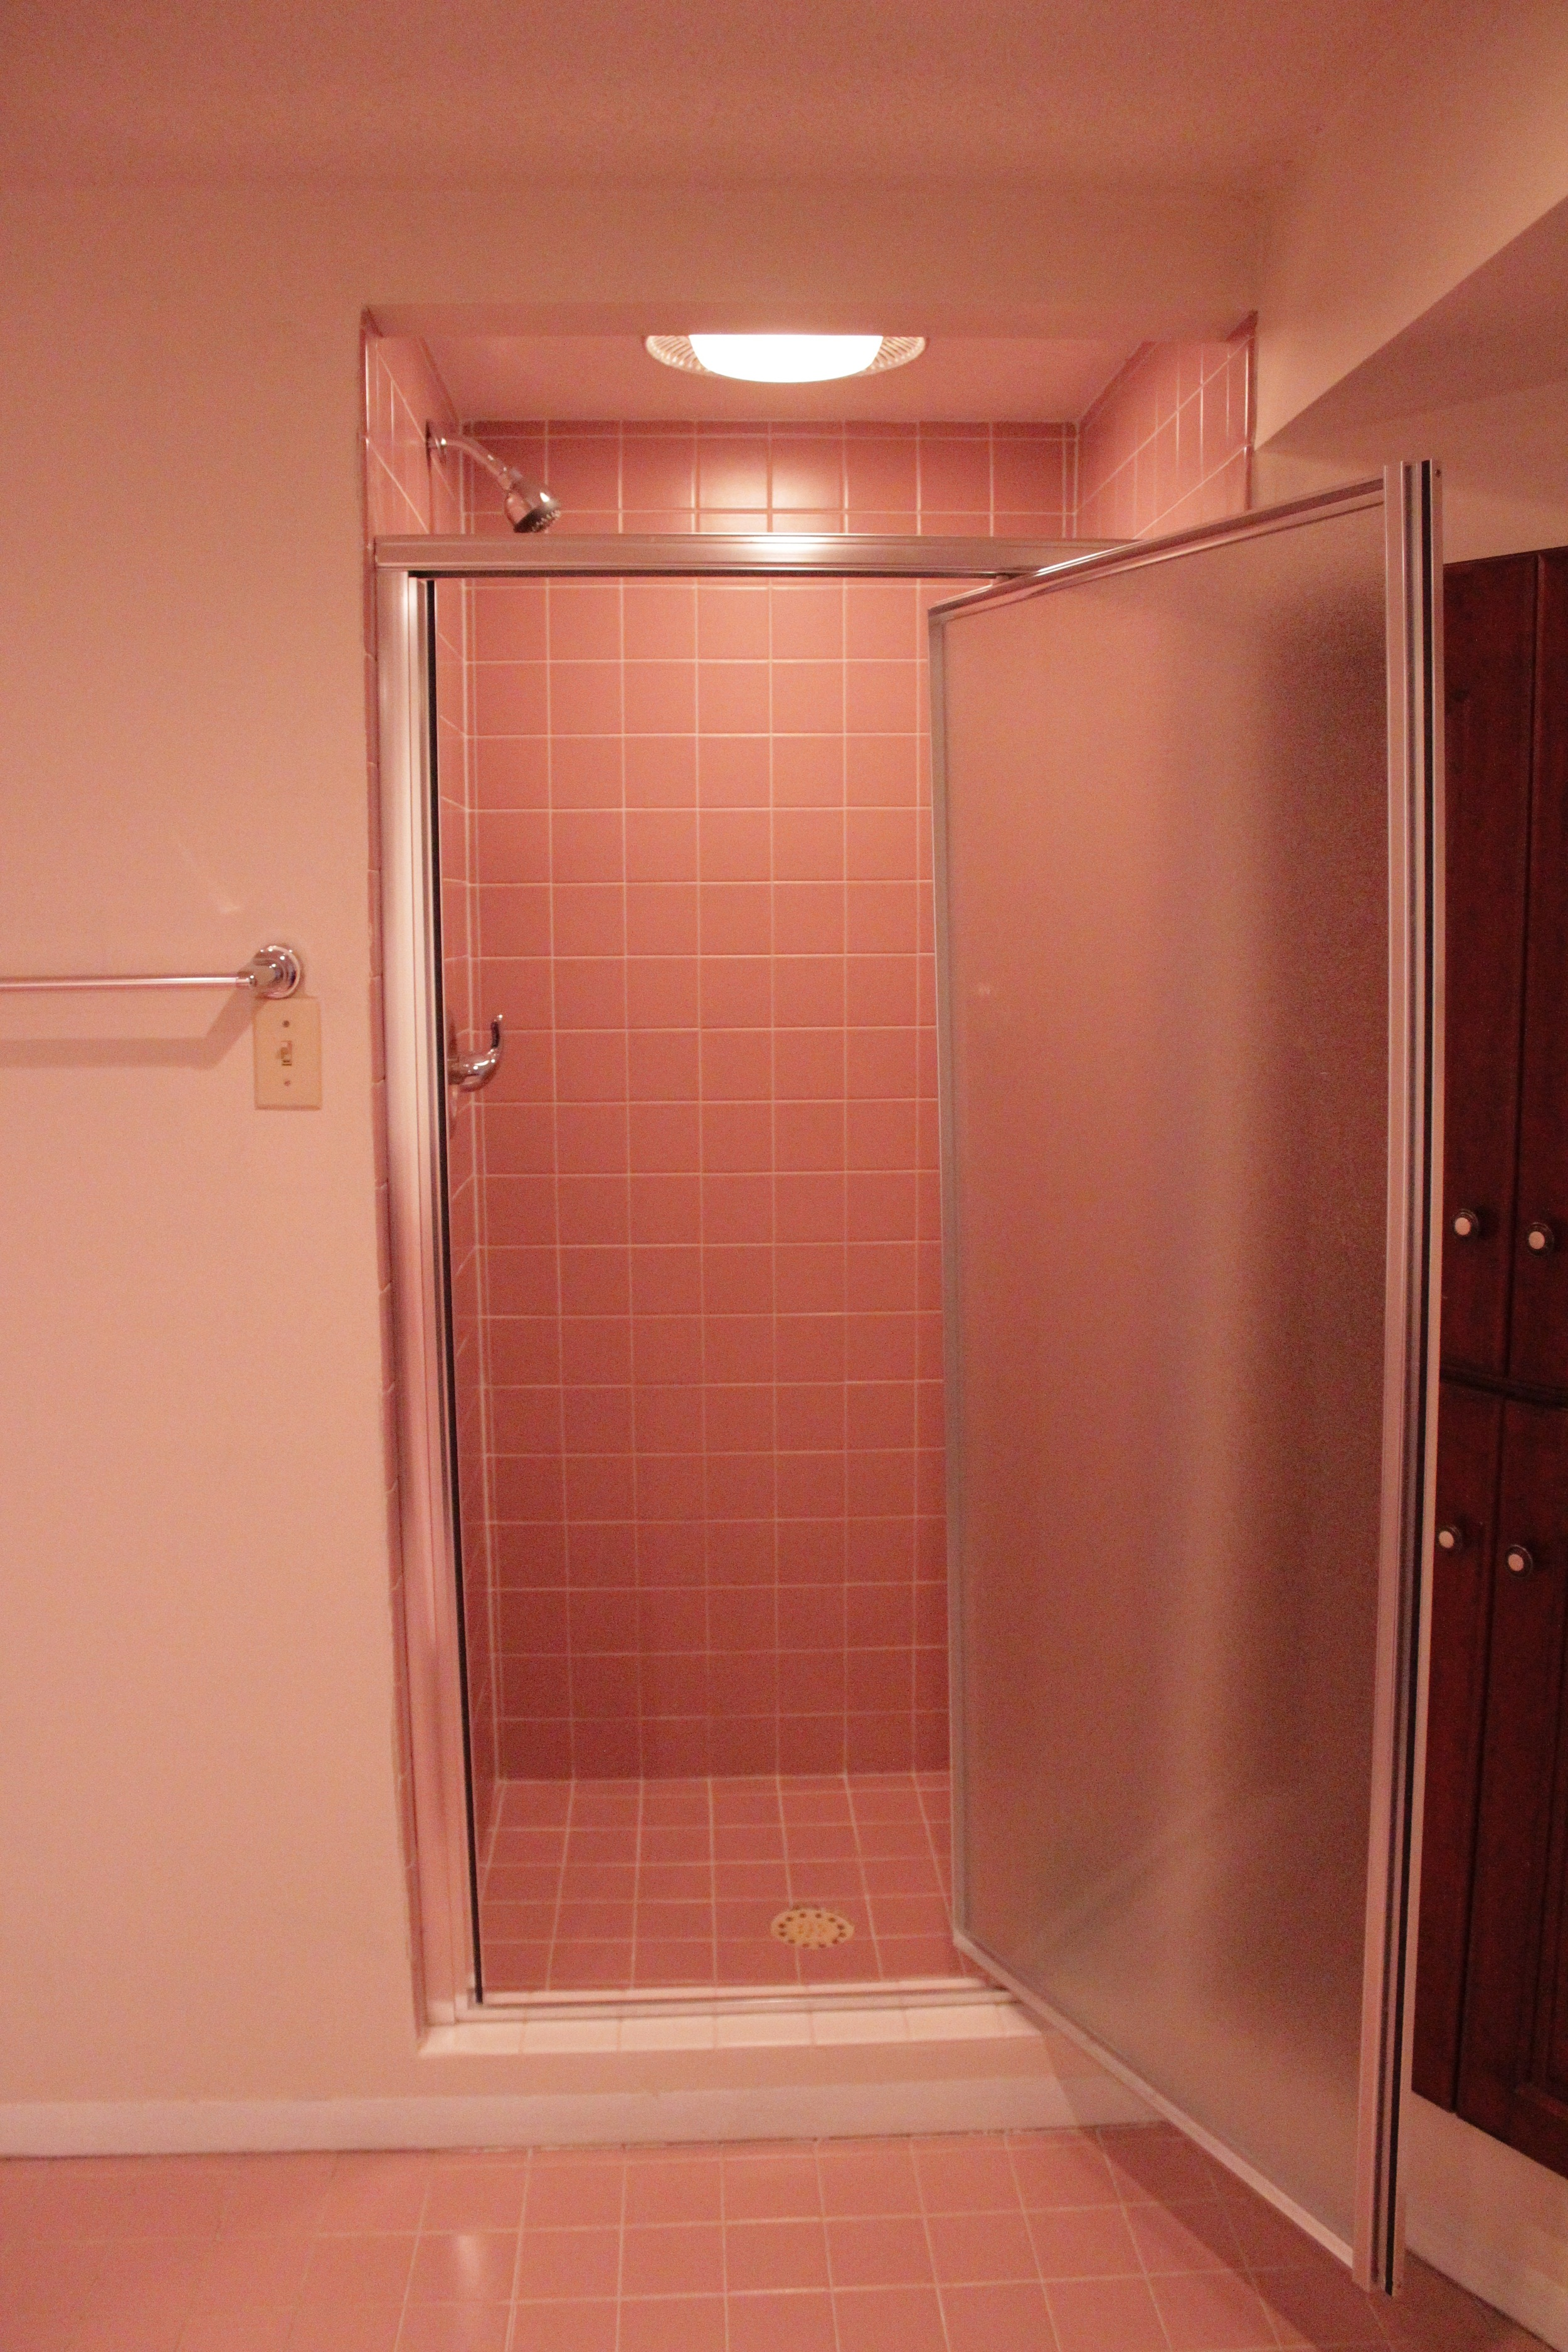 Before and After Bathroom Remodel With Lowes